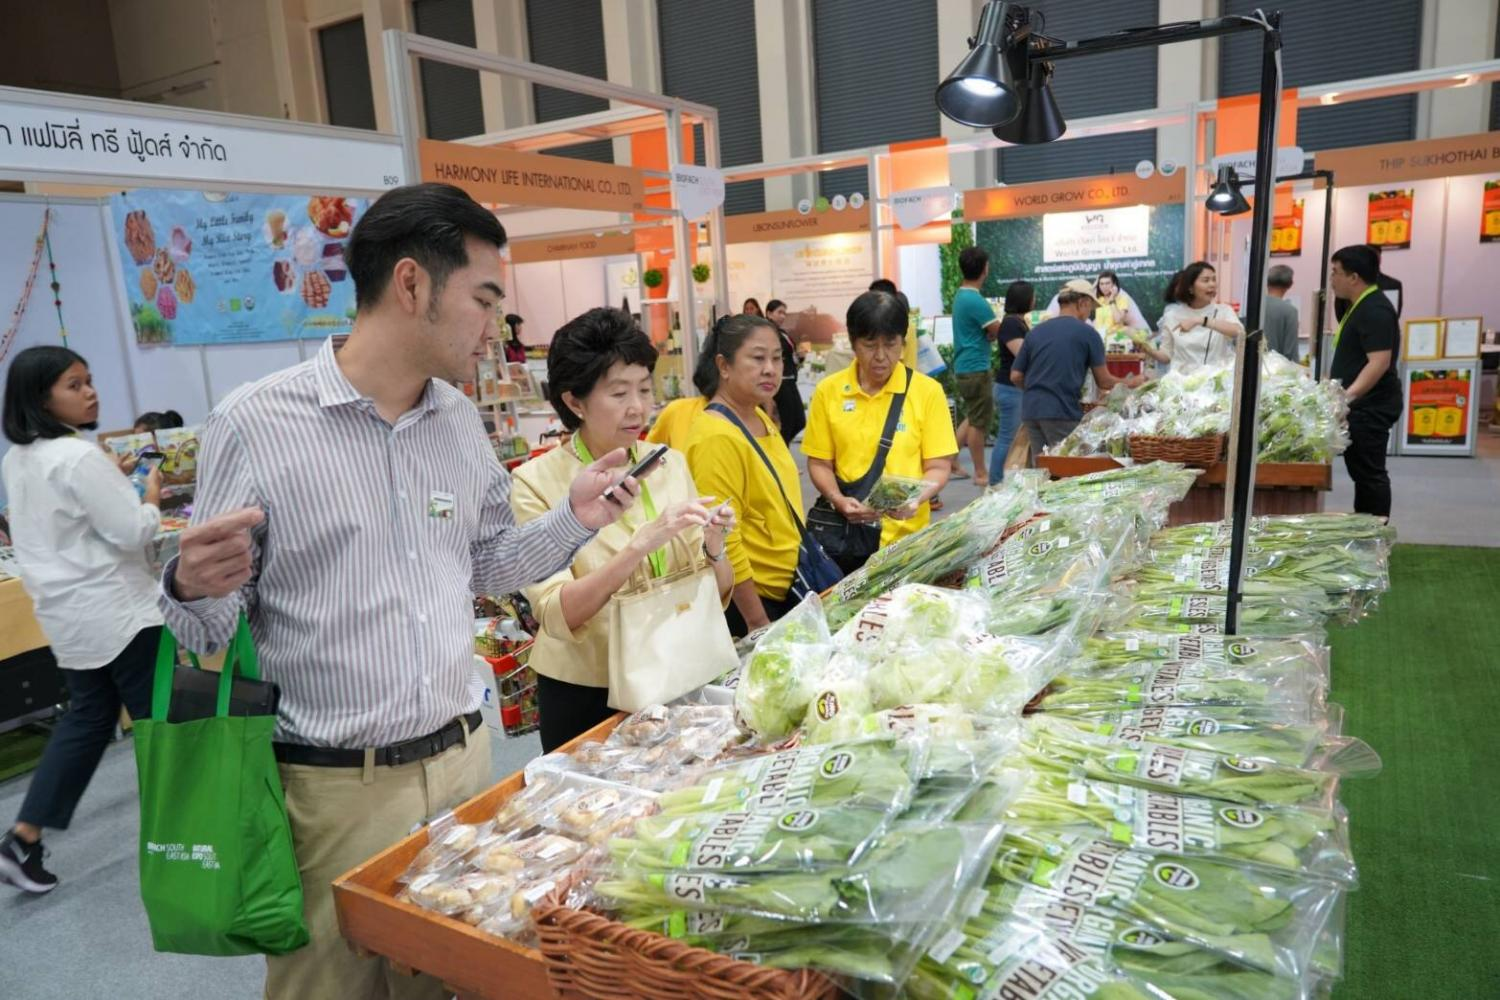 Thailand's organic product market is worth about 3 billion baht, consisting mainly of exports.